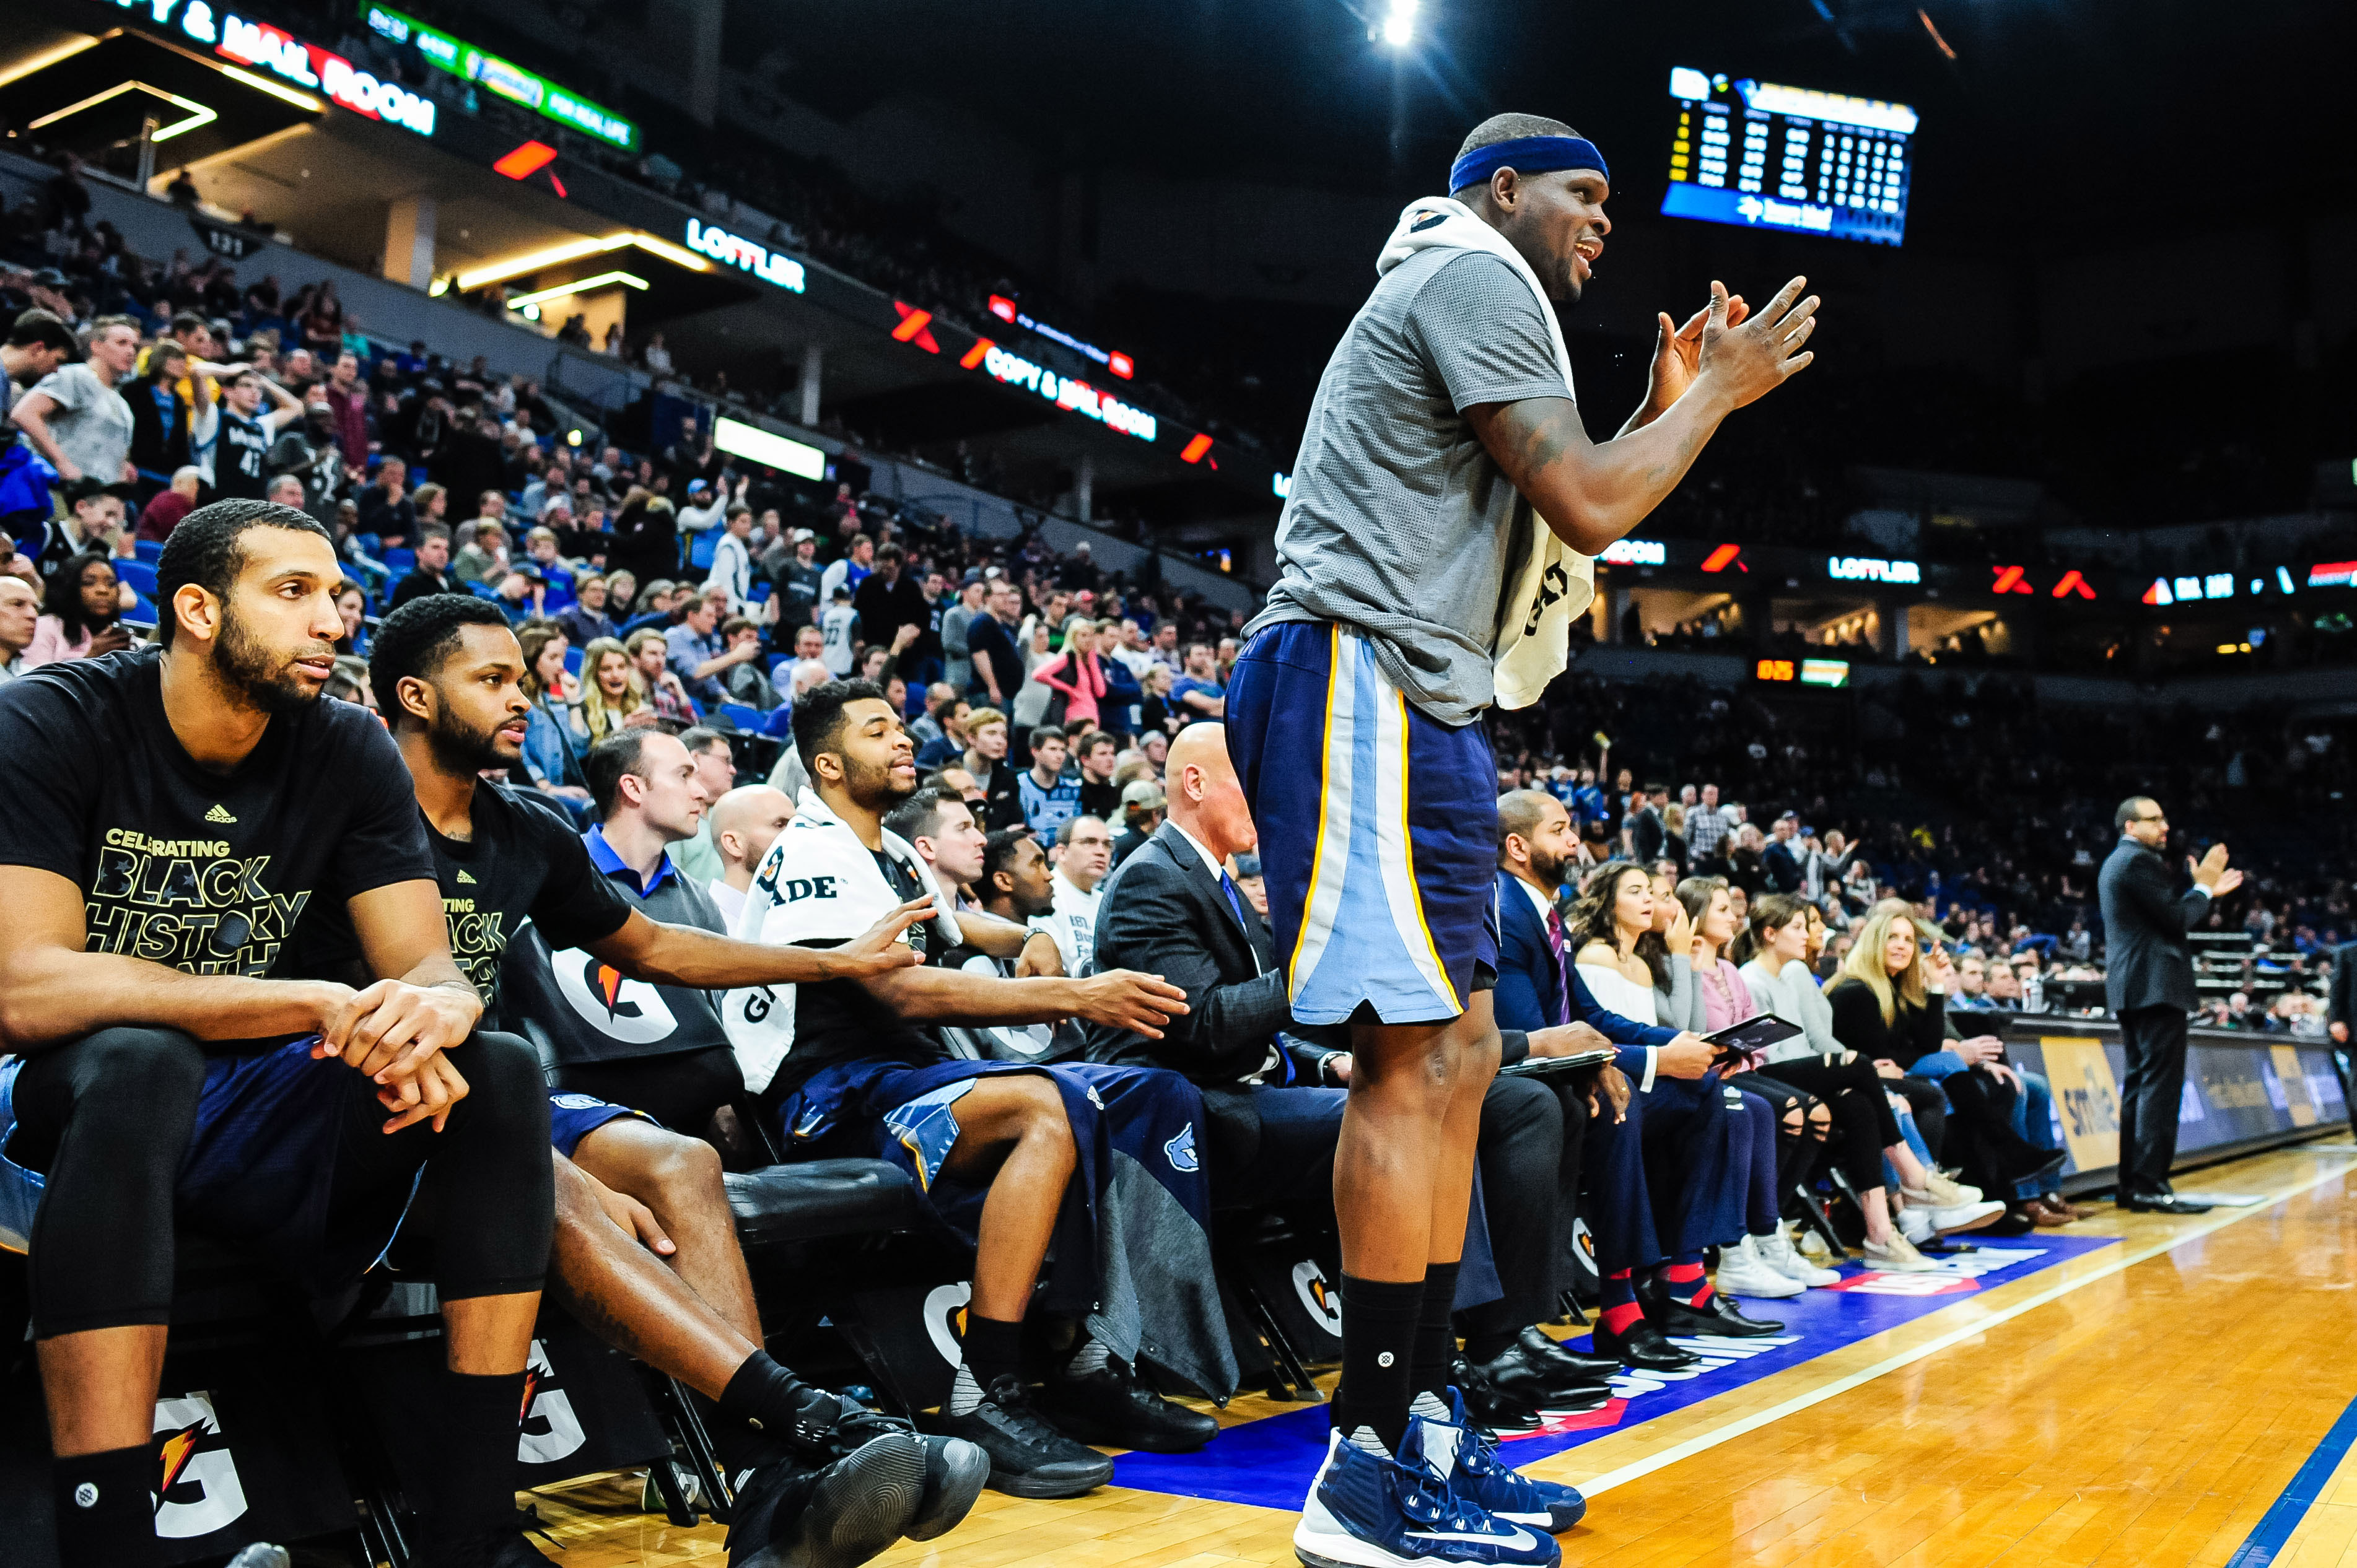 Feb 4, 2017; Minneapolis, MN, USA; Memphis Grizzlies forward Zach Randolph (standing) celebrates from the bench during the fourth quarter against the Minnesota Timberwolves at Target Center. Randolph had previously fouled out. The Grizzlies won 107-99. Mandatory Credit: Jeffrey Becker-USA TODAY Sports